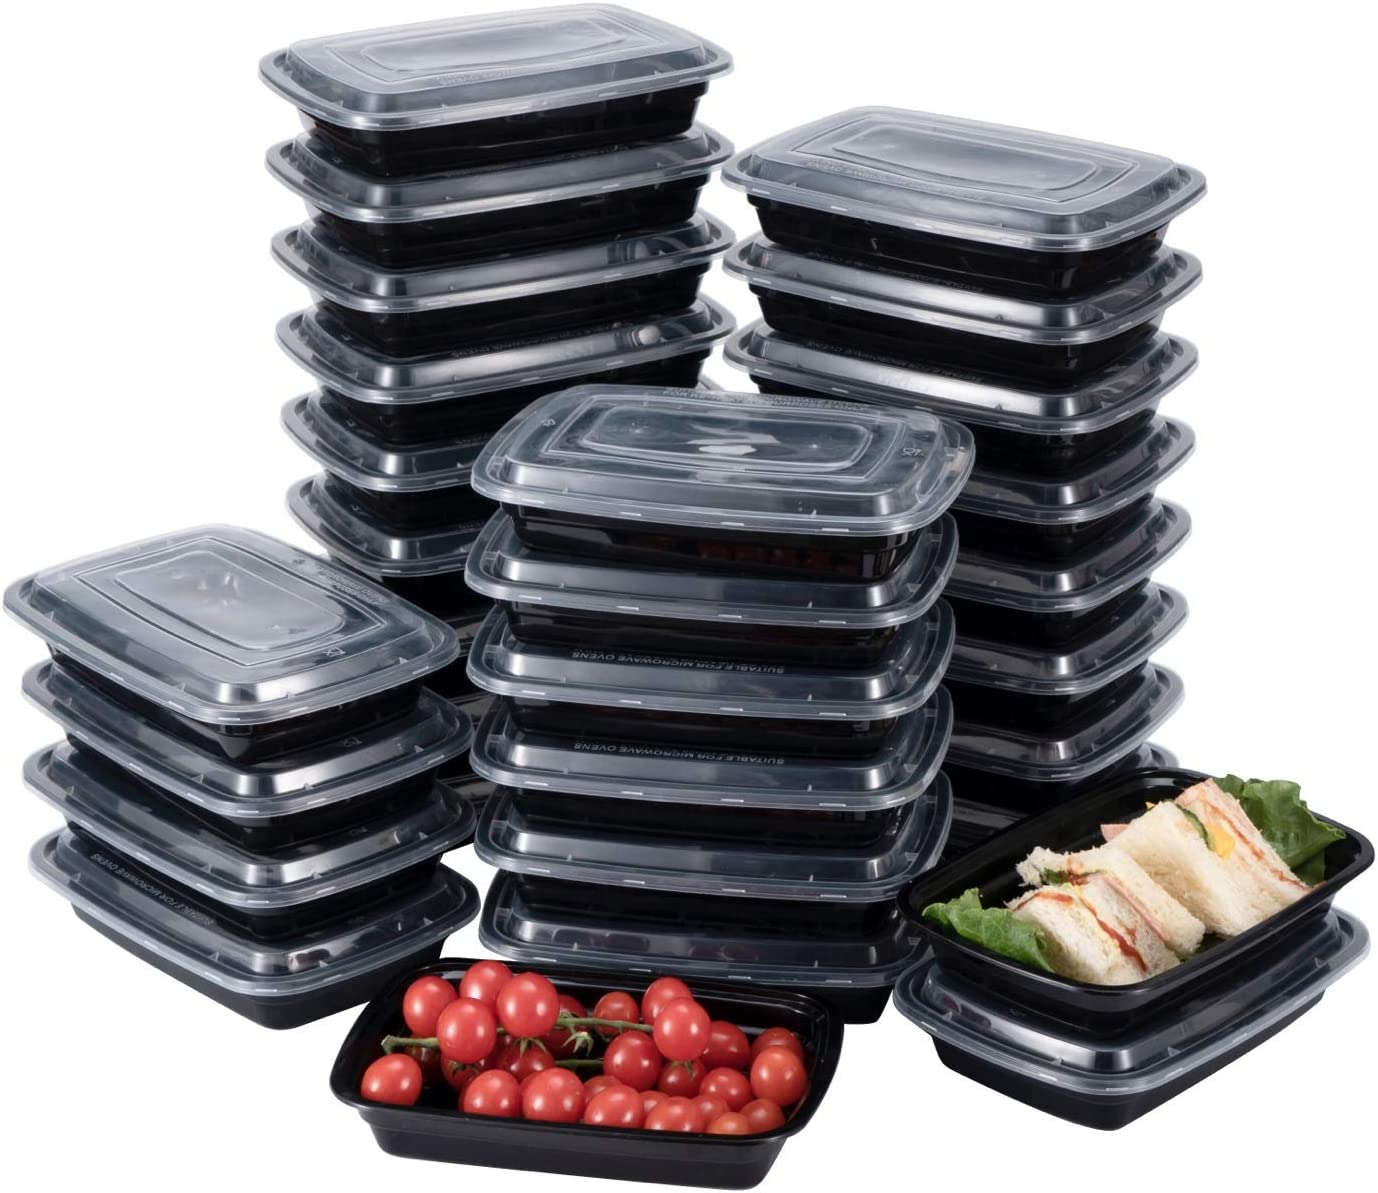 Bento BoxMeal Prep Containers [30 Pack] 1 Compartment with Lids, Food Storage Containers